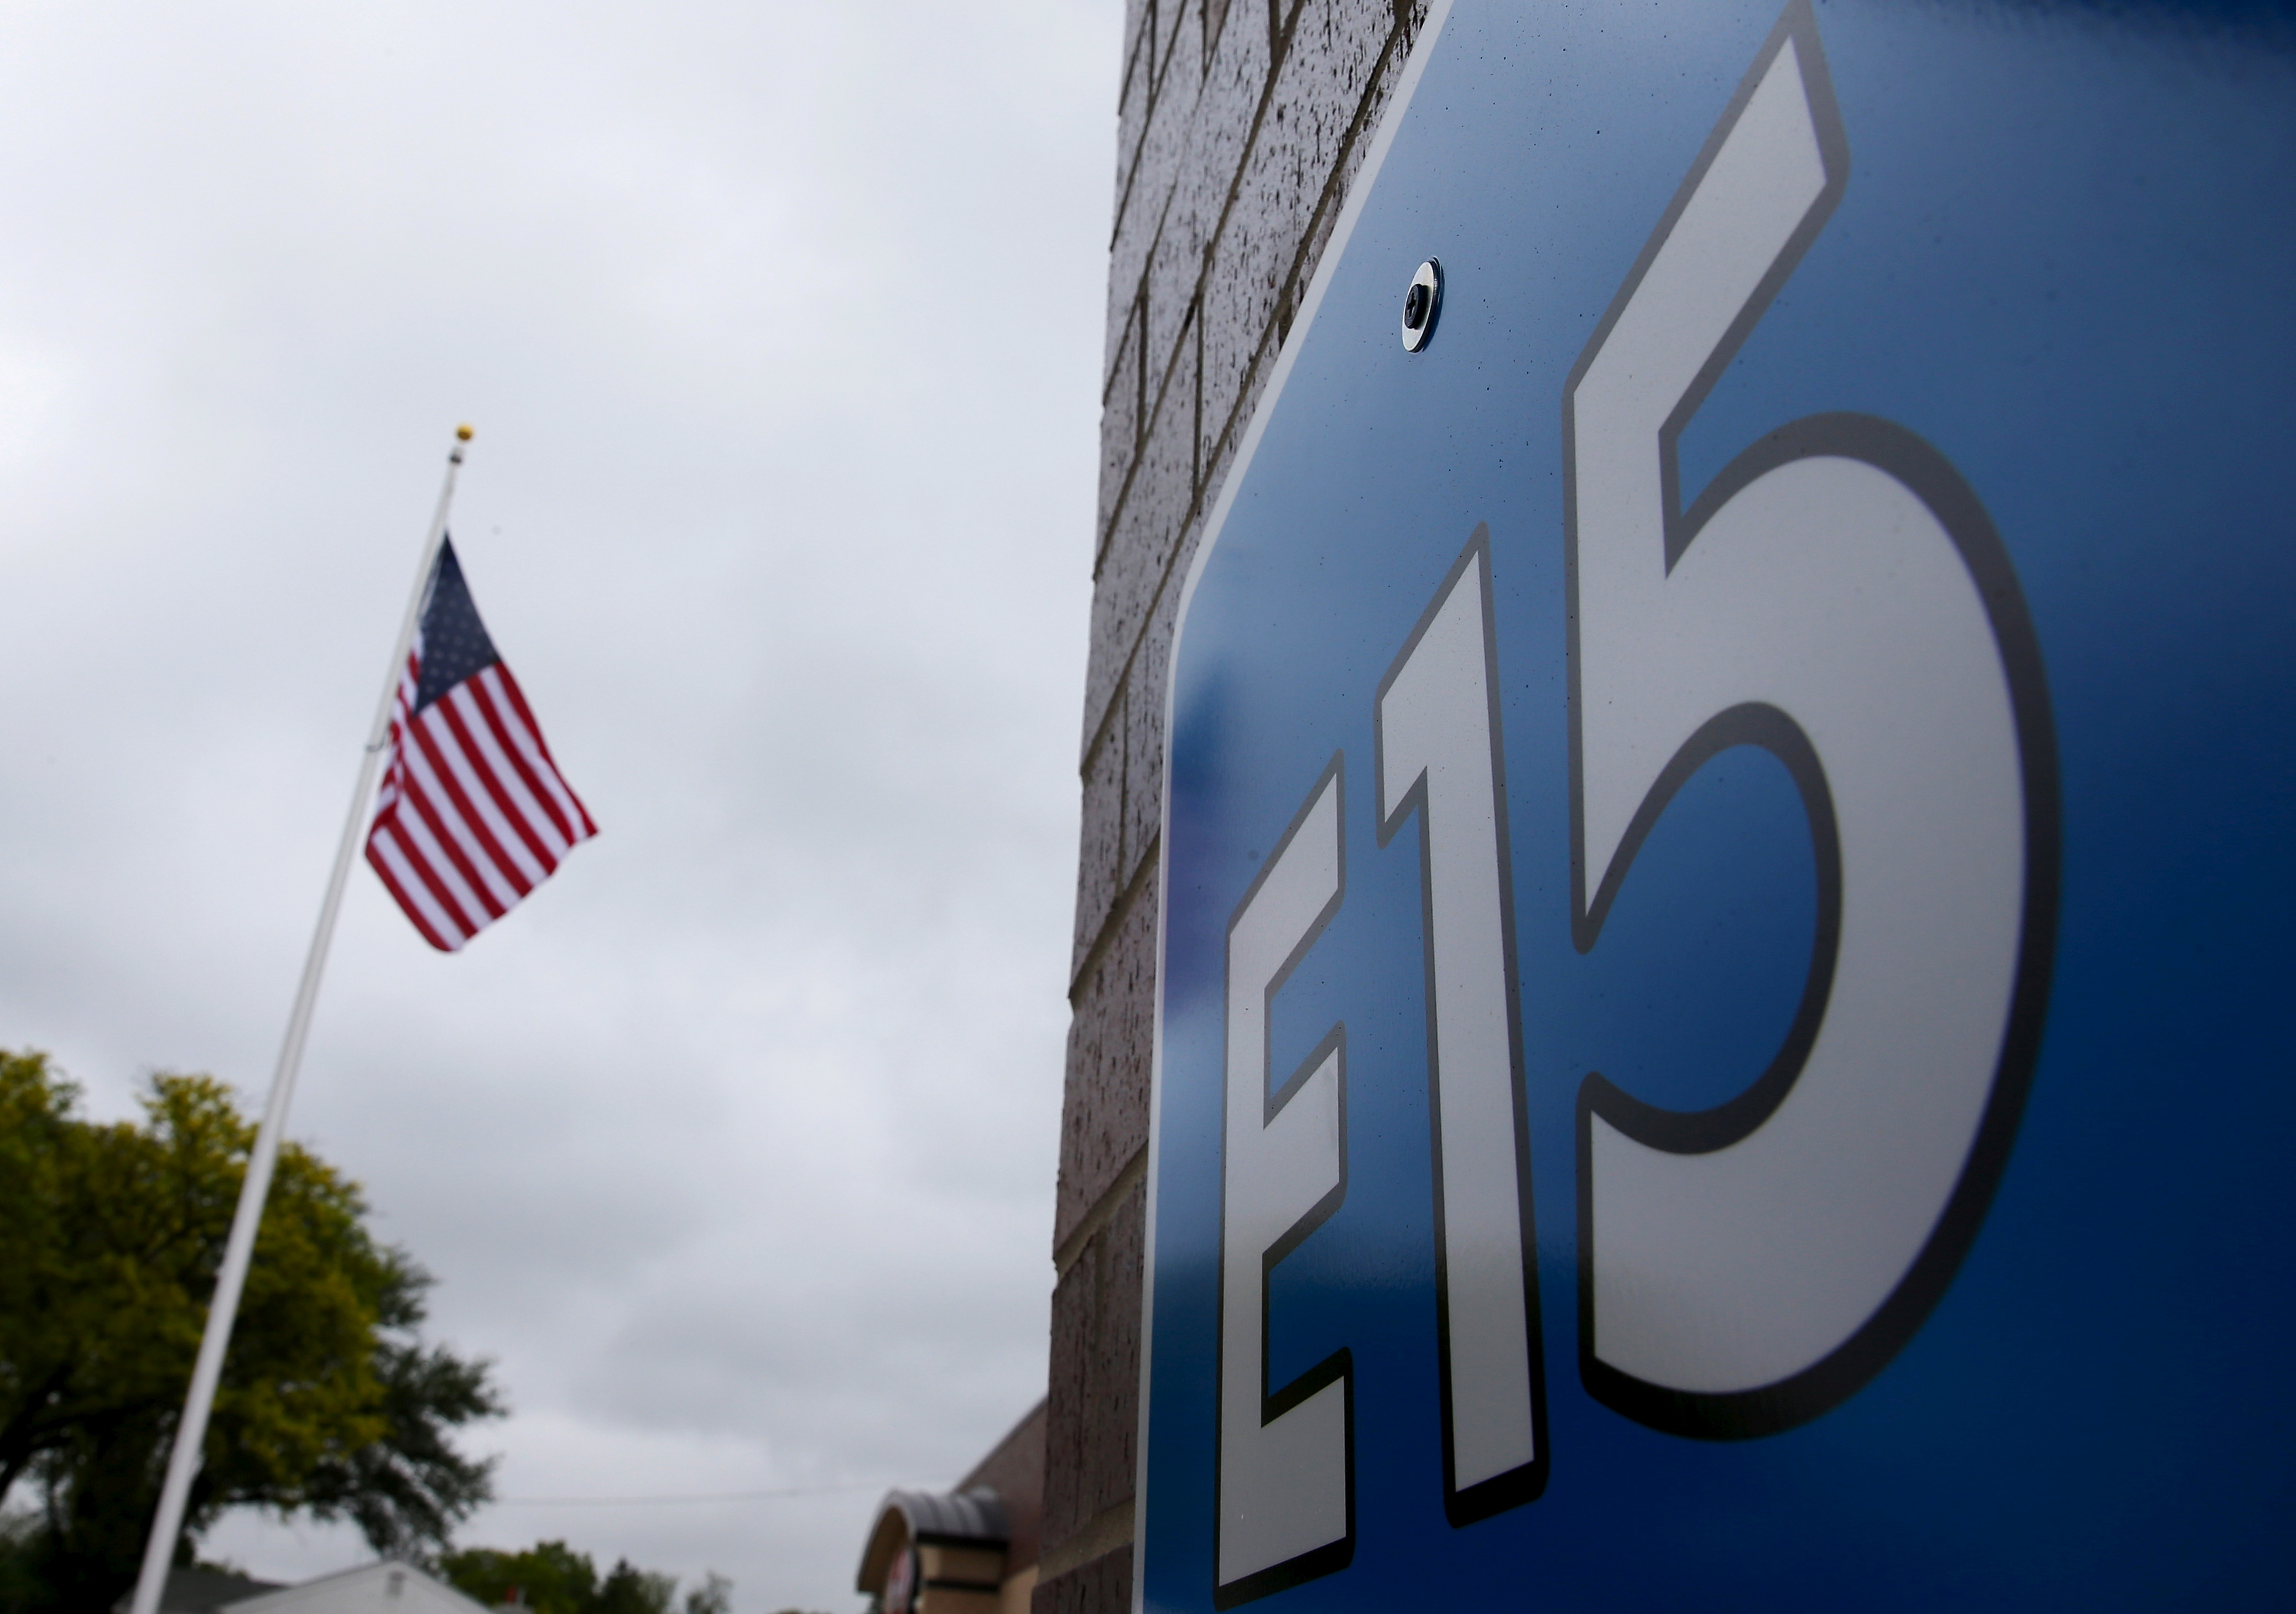 A sign advertising E15, a gasoline with 15% of ethanol, is seen at a gas station in Clive, Iowa, United States, May 17, 2015. REUTERS/Jim Young/File Photo